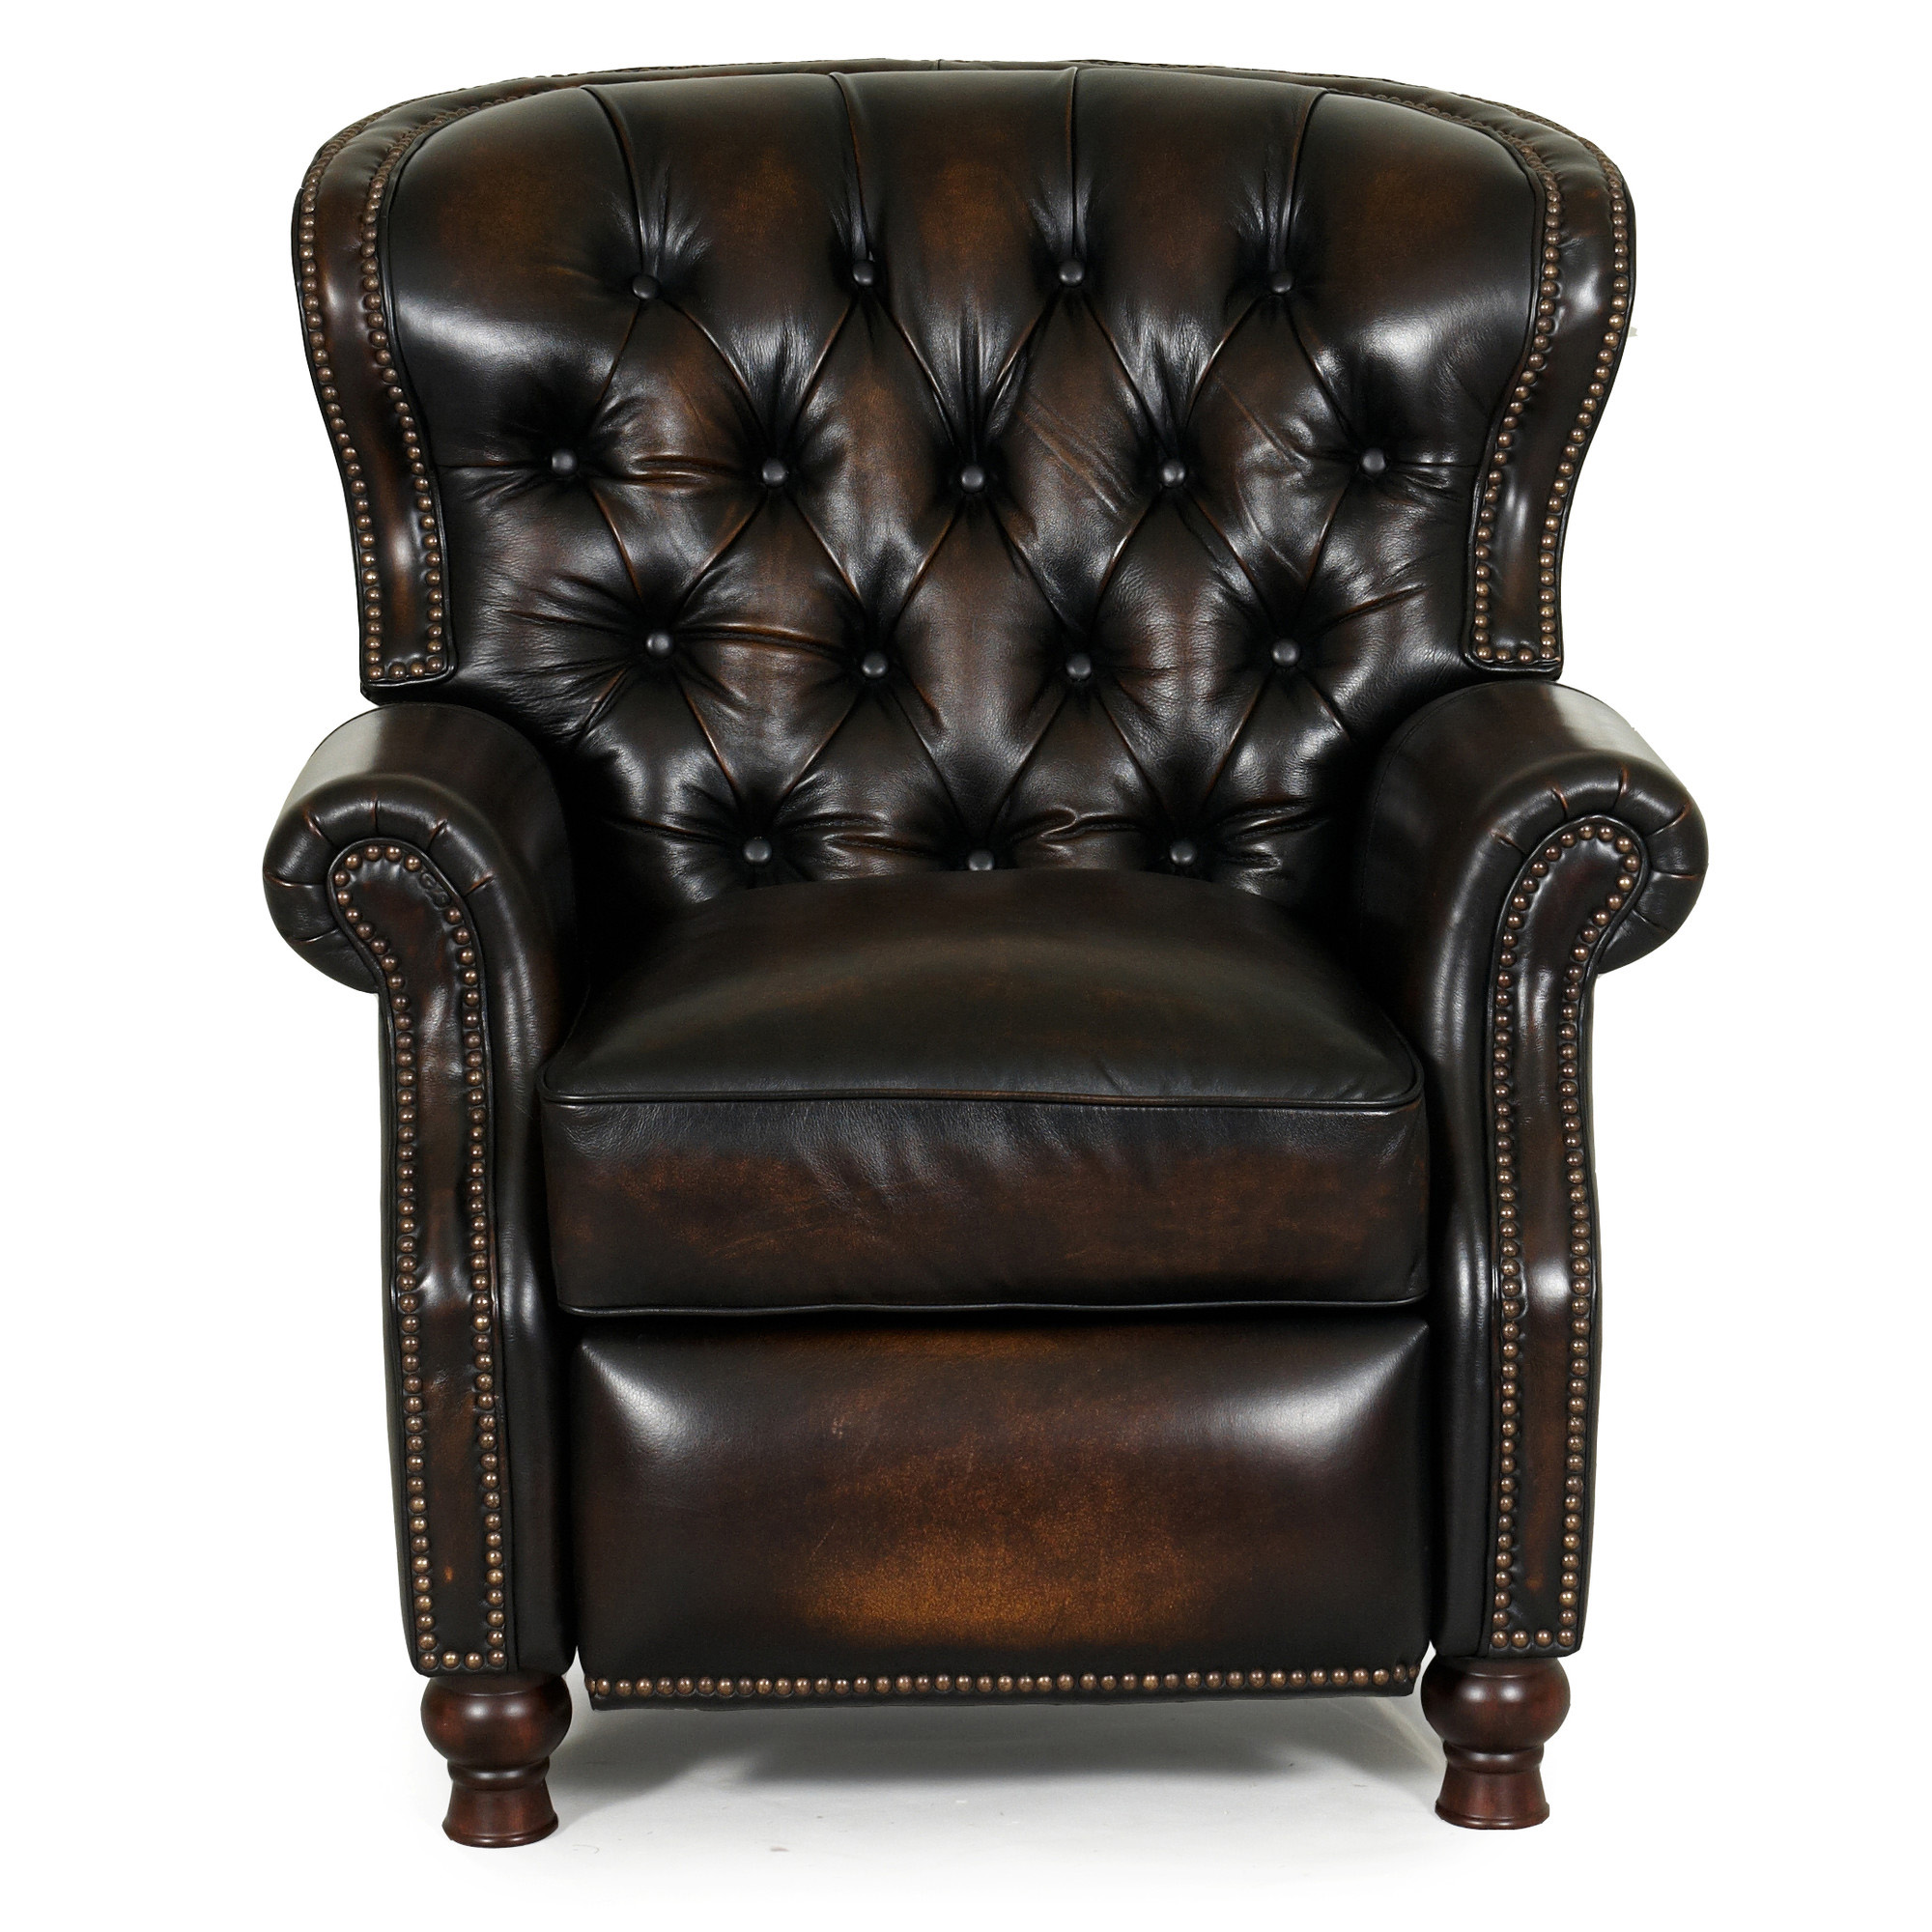 Barcalounger presidential ii leather recliner chair for Chair recliner